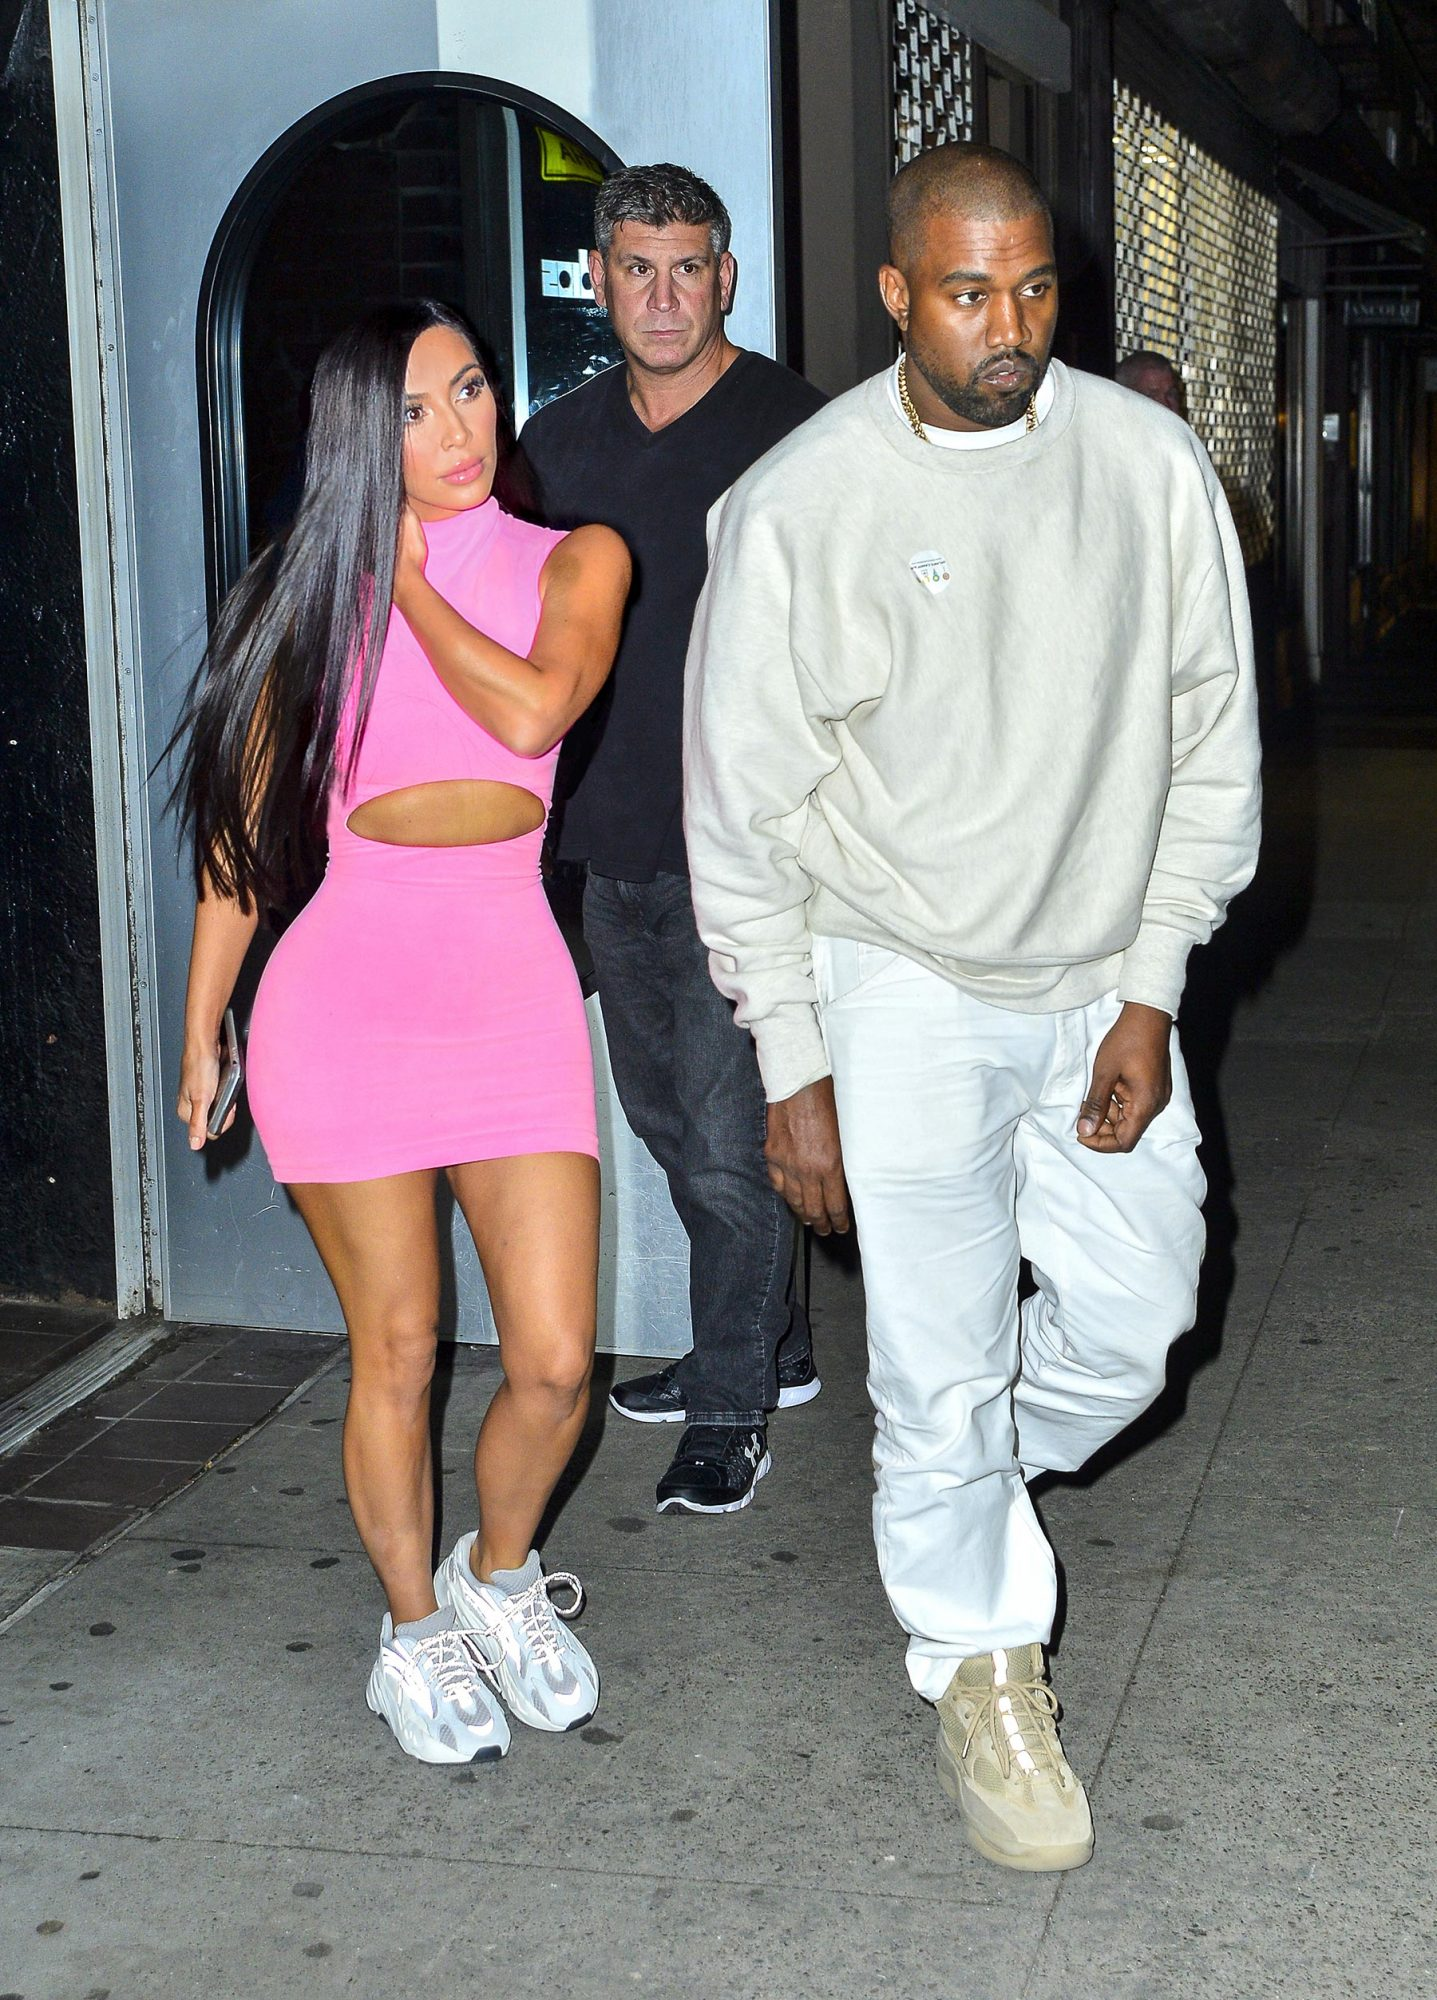 EXCLUSIVE: Kim Kardashian and Kanye West spotted during late night New York outing